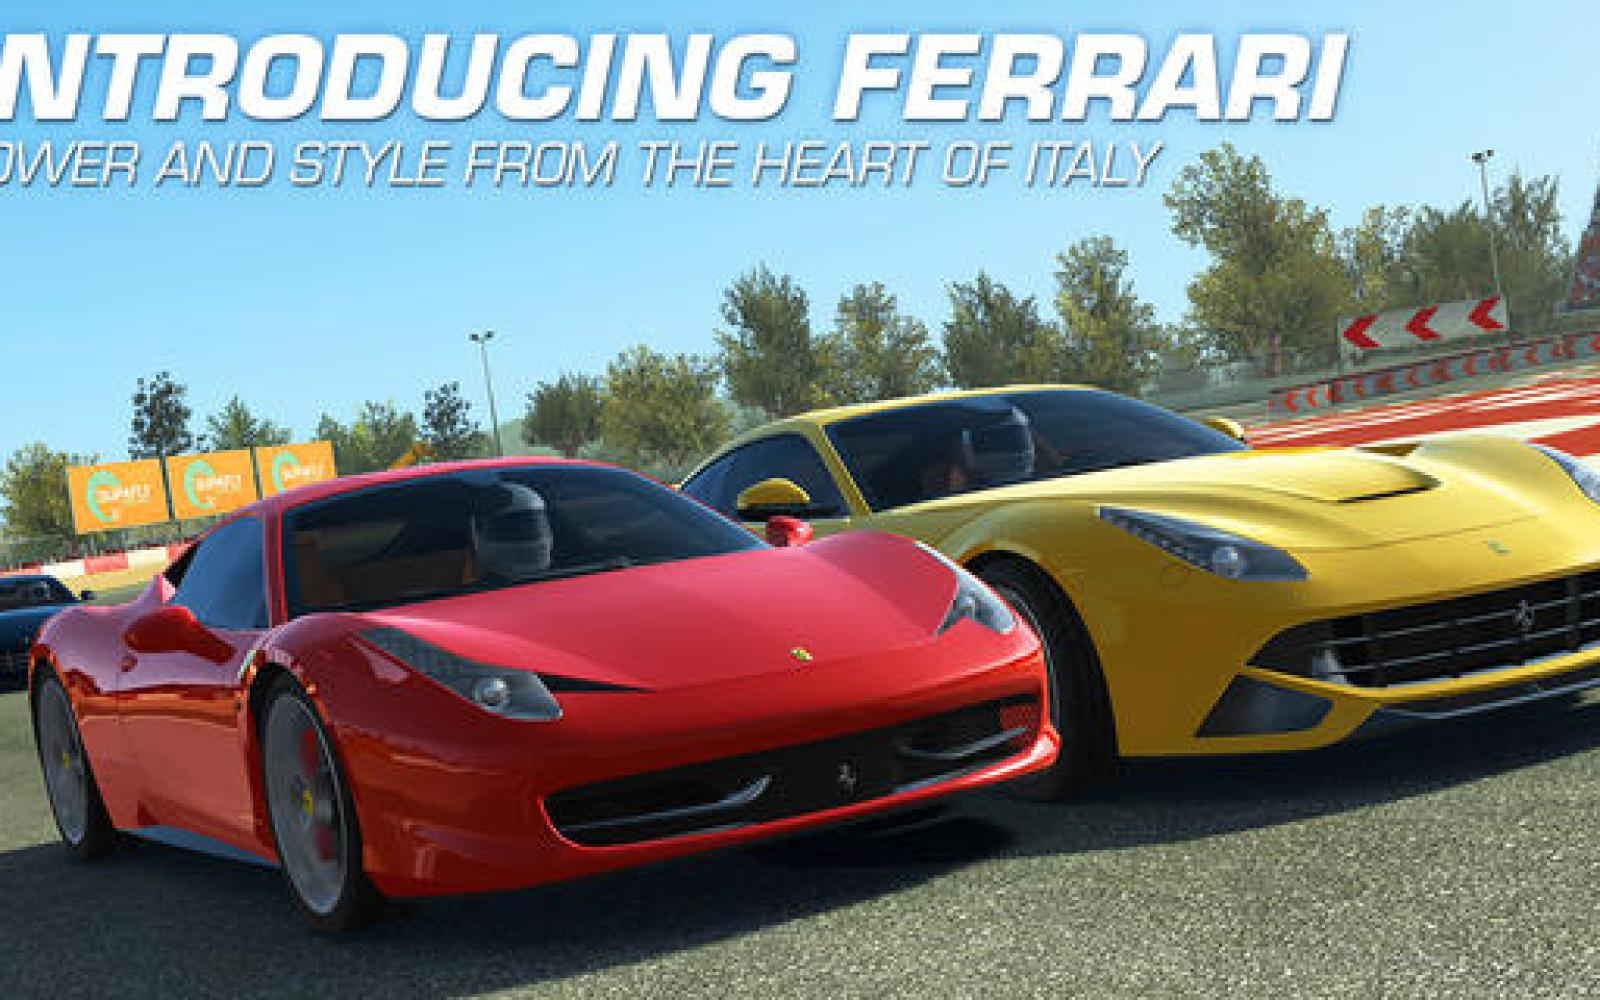 Real Racing 3 iOS app updated w/ Ferraris, HUD customization, new tracks & challenges